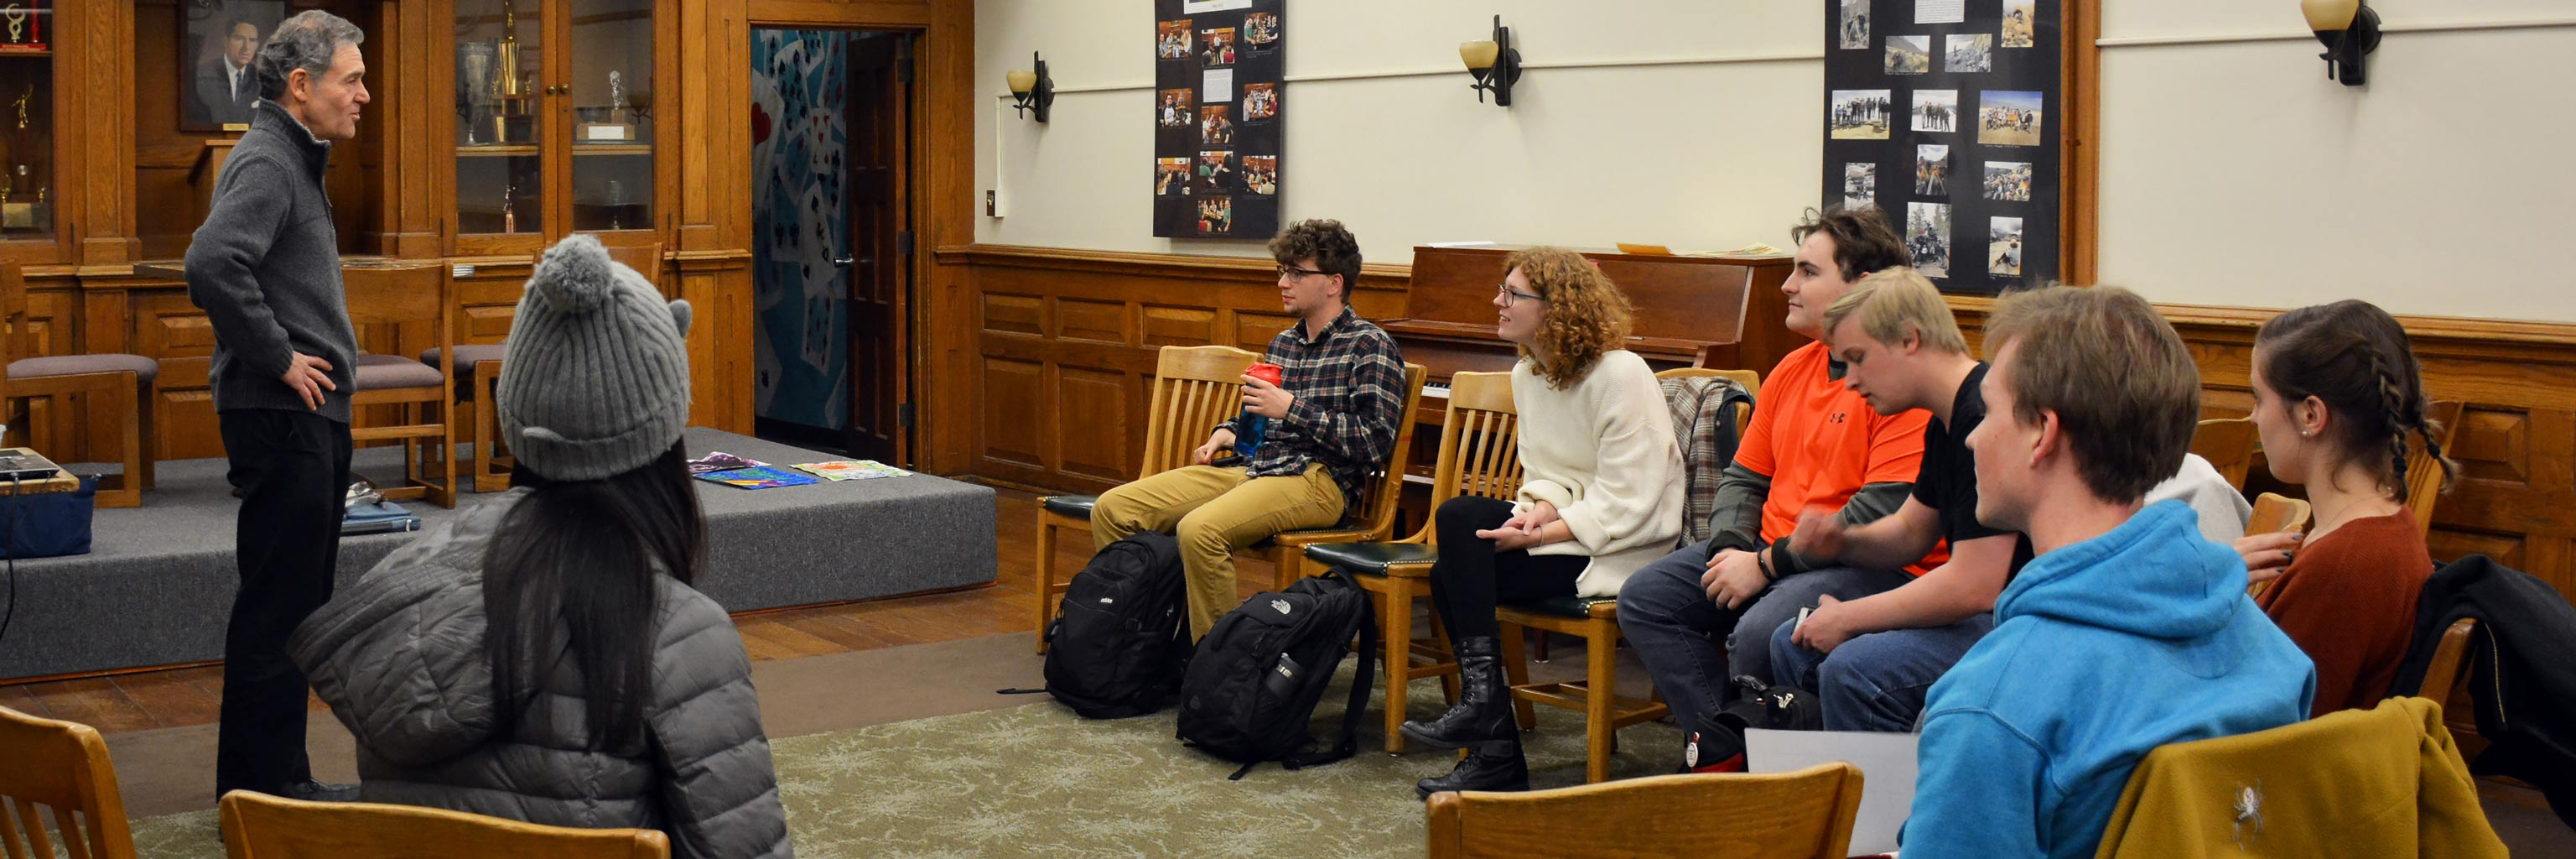 A professor lectures to a small group of engaged students